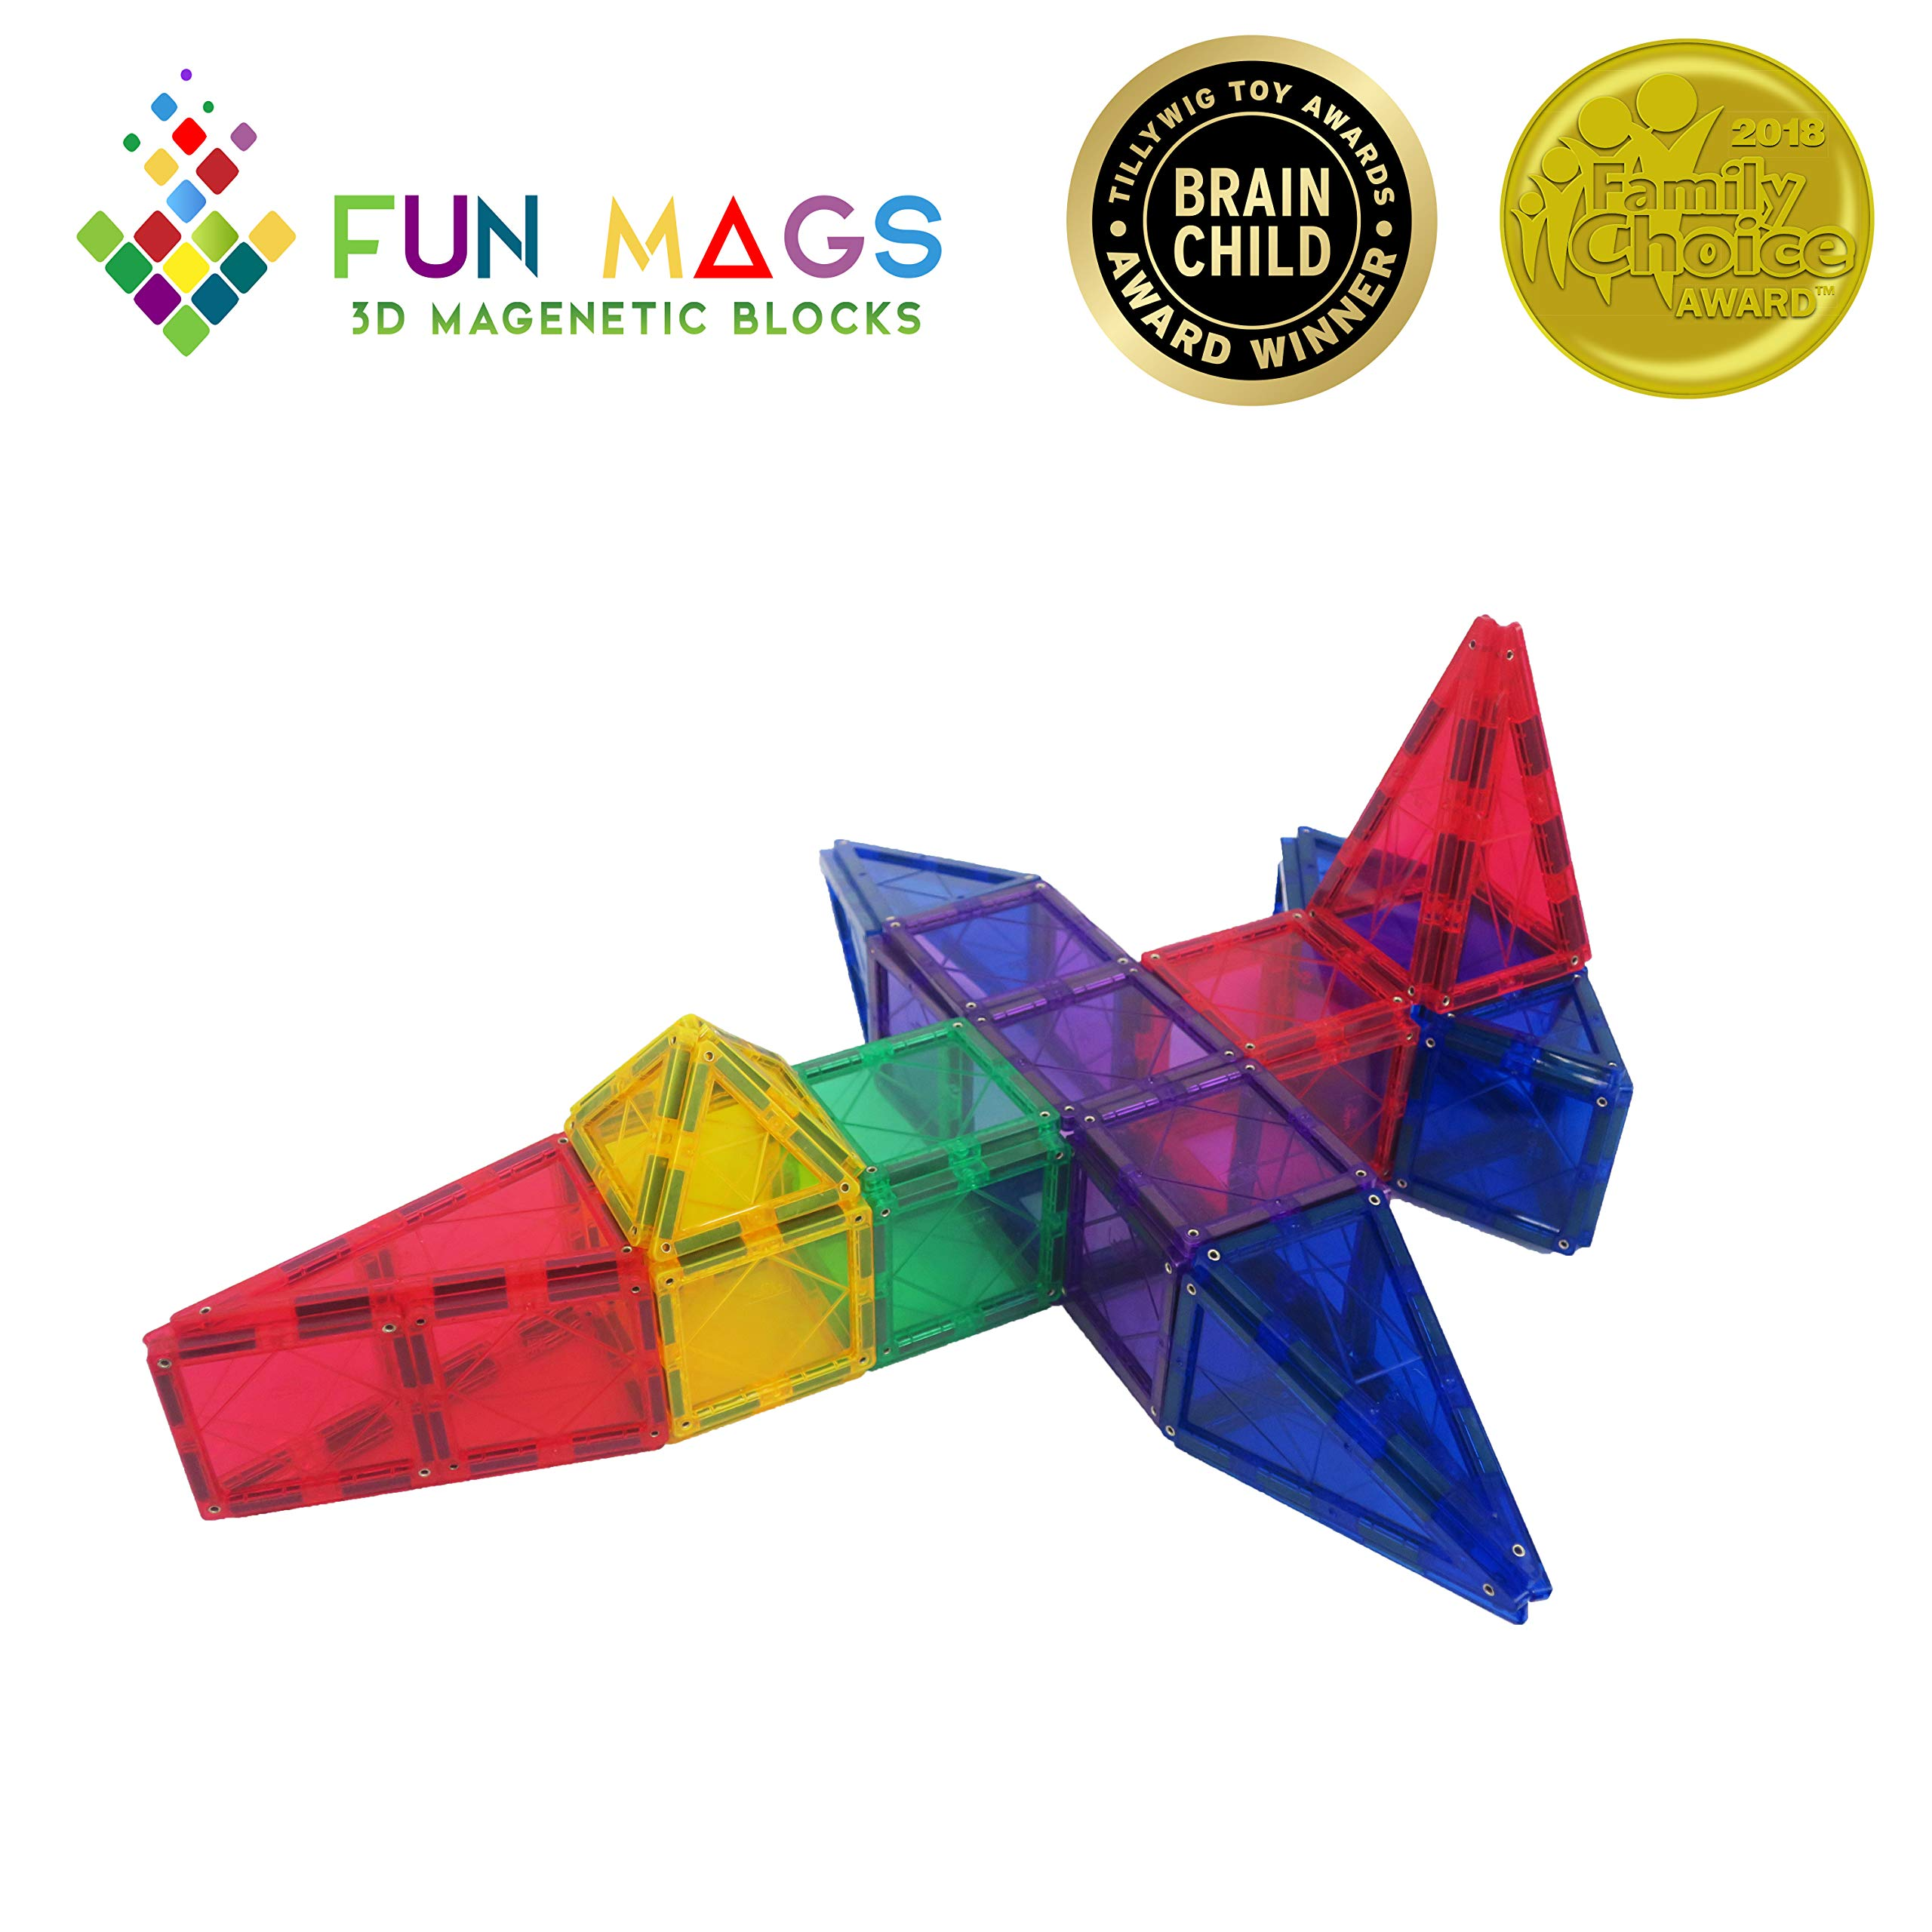 Fun Mags Magnetic Blocks 100-Piece Set 3D Magnetic Building Blocks, STEM Educational Magna Magnetic Tiles Magnet Toys for Kids, Toddlers by Lustien Toys (Image #6)